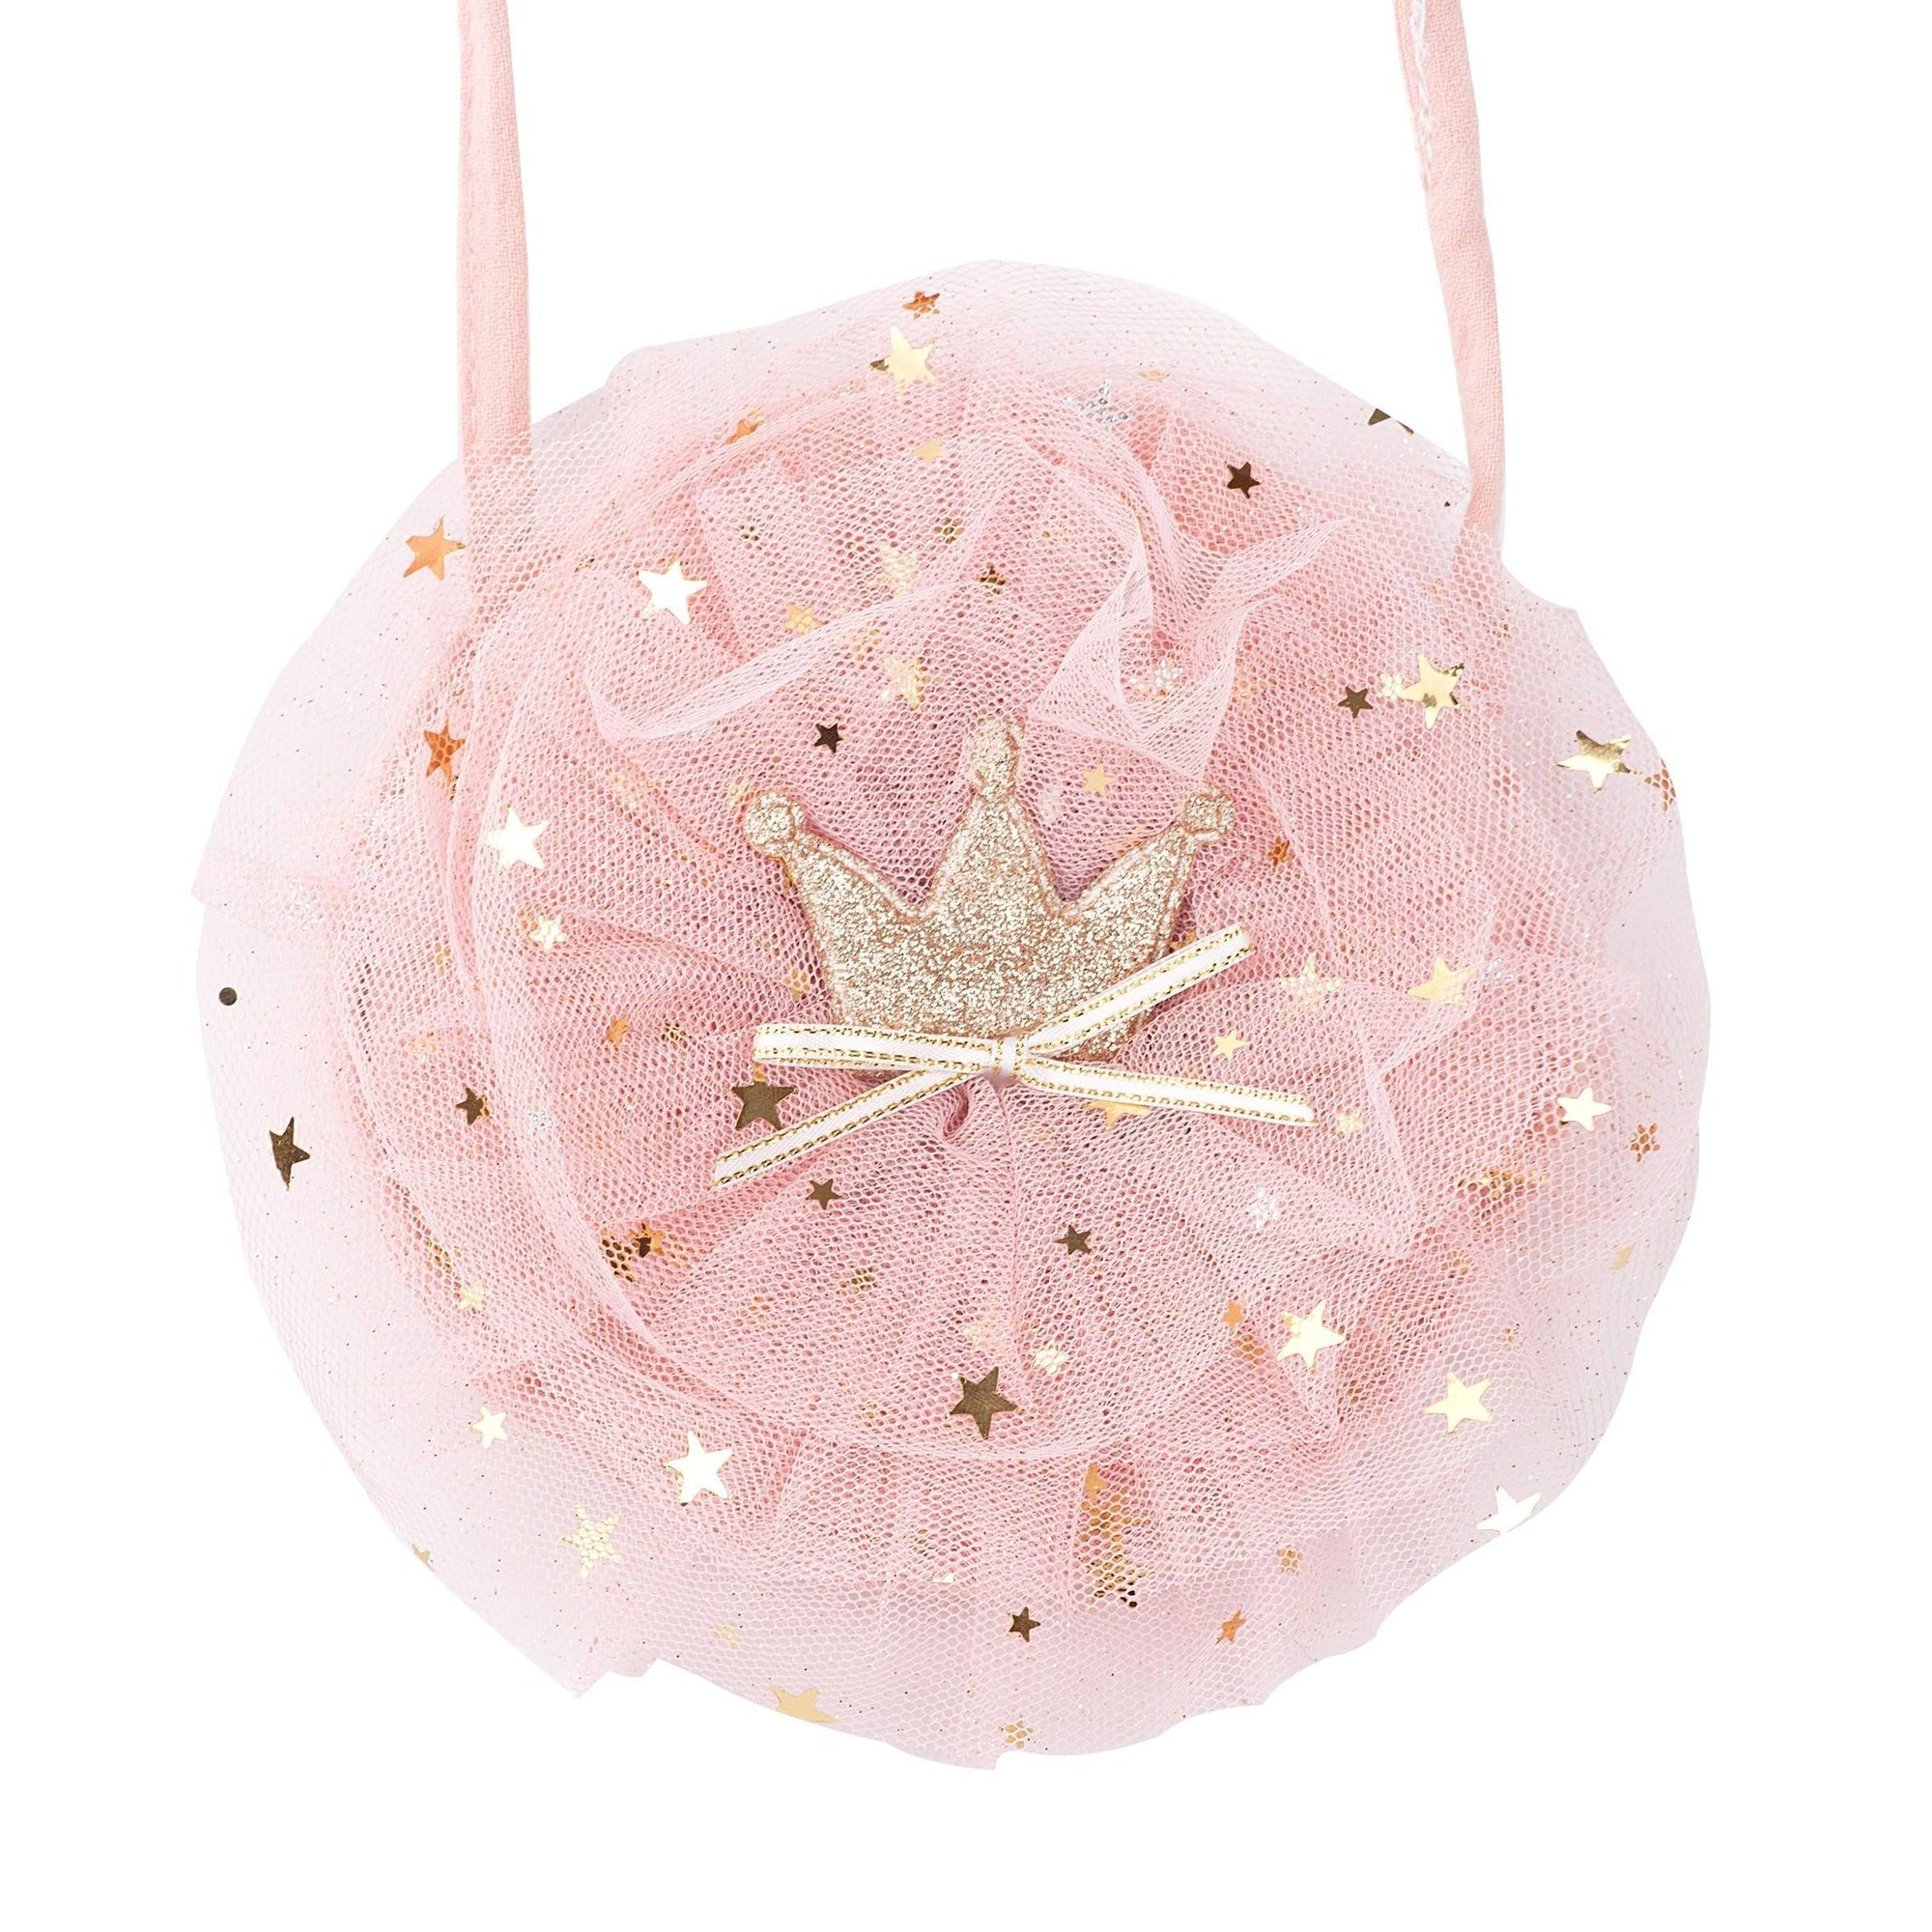 Buy Princess Bag - Pink - Designer Kidz | Special Occasions, Party Wear & Weddings  | Sizes 000-16 | Little Girls Party Dresses, Tutu Dresses, Flower Girl Dresses | Pay with Afterpay | Free AU Delivery Over $80